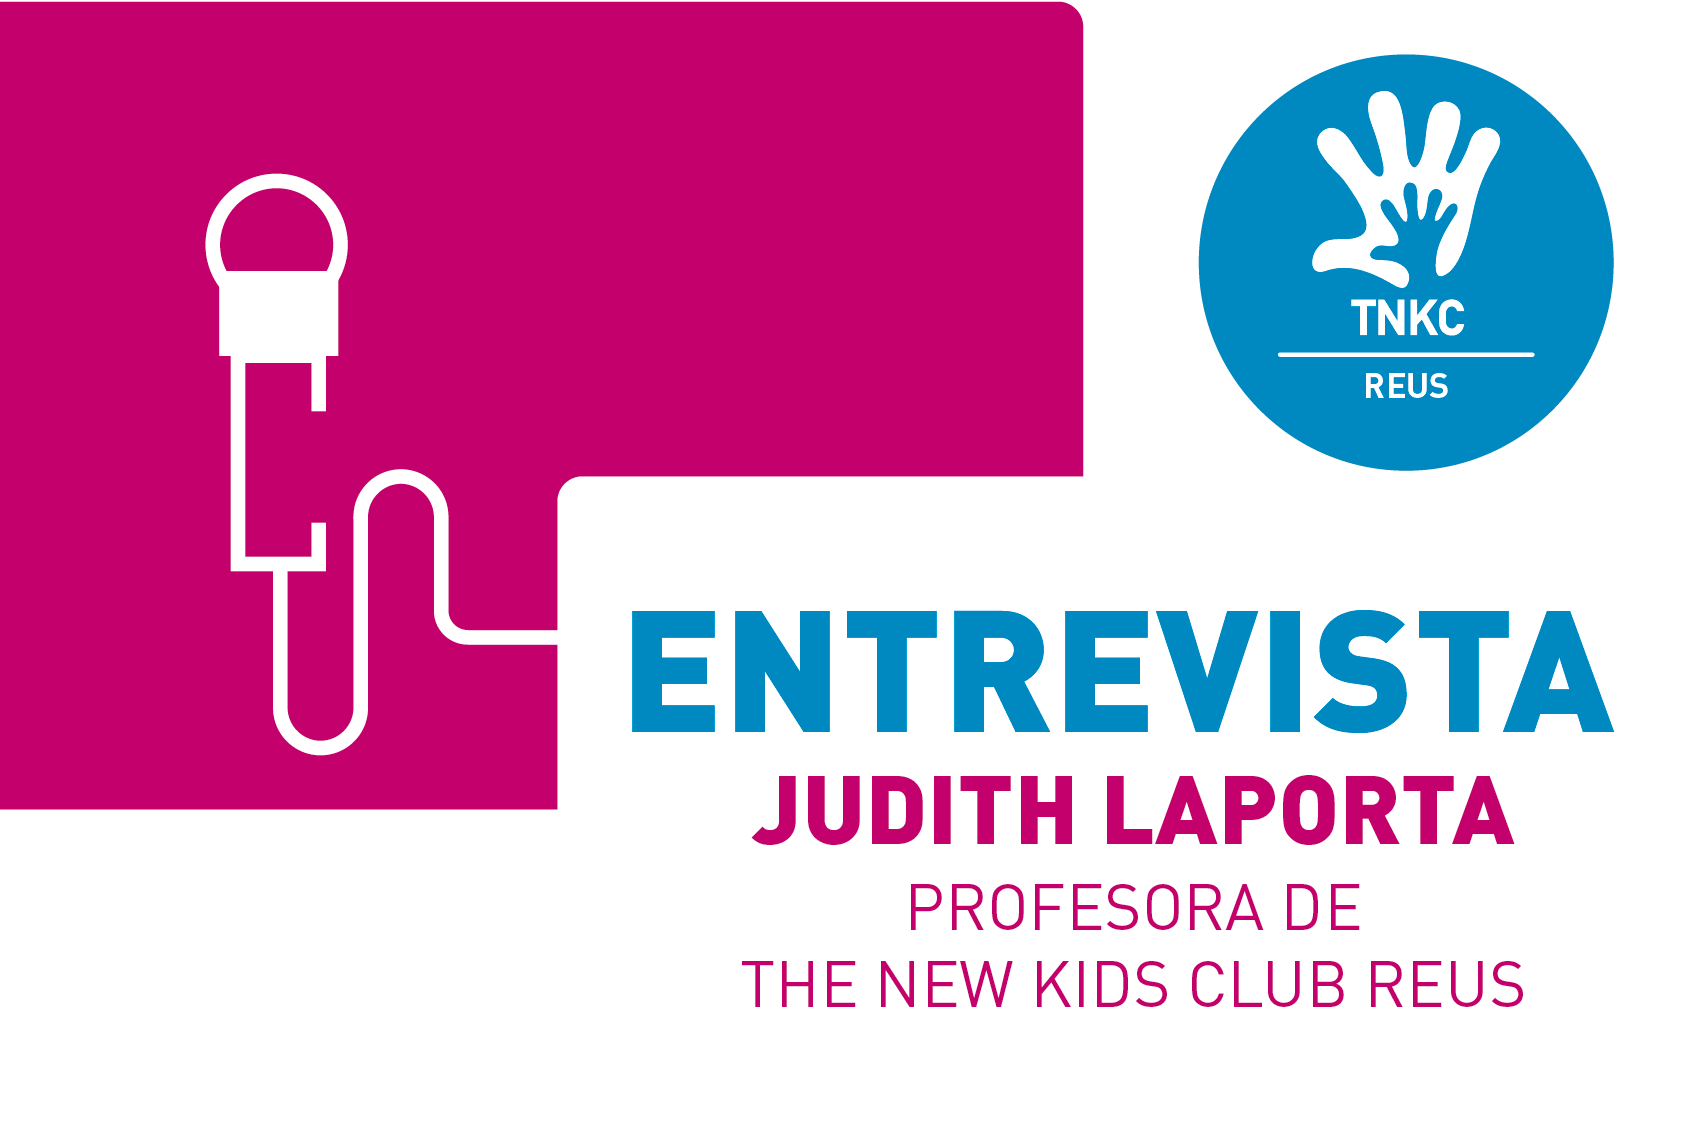 Interview with Judith Laporta, teacher of English at TNKC- Reus